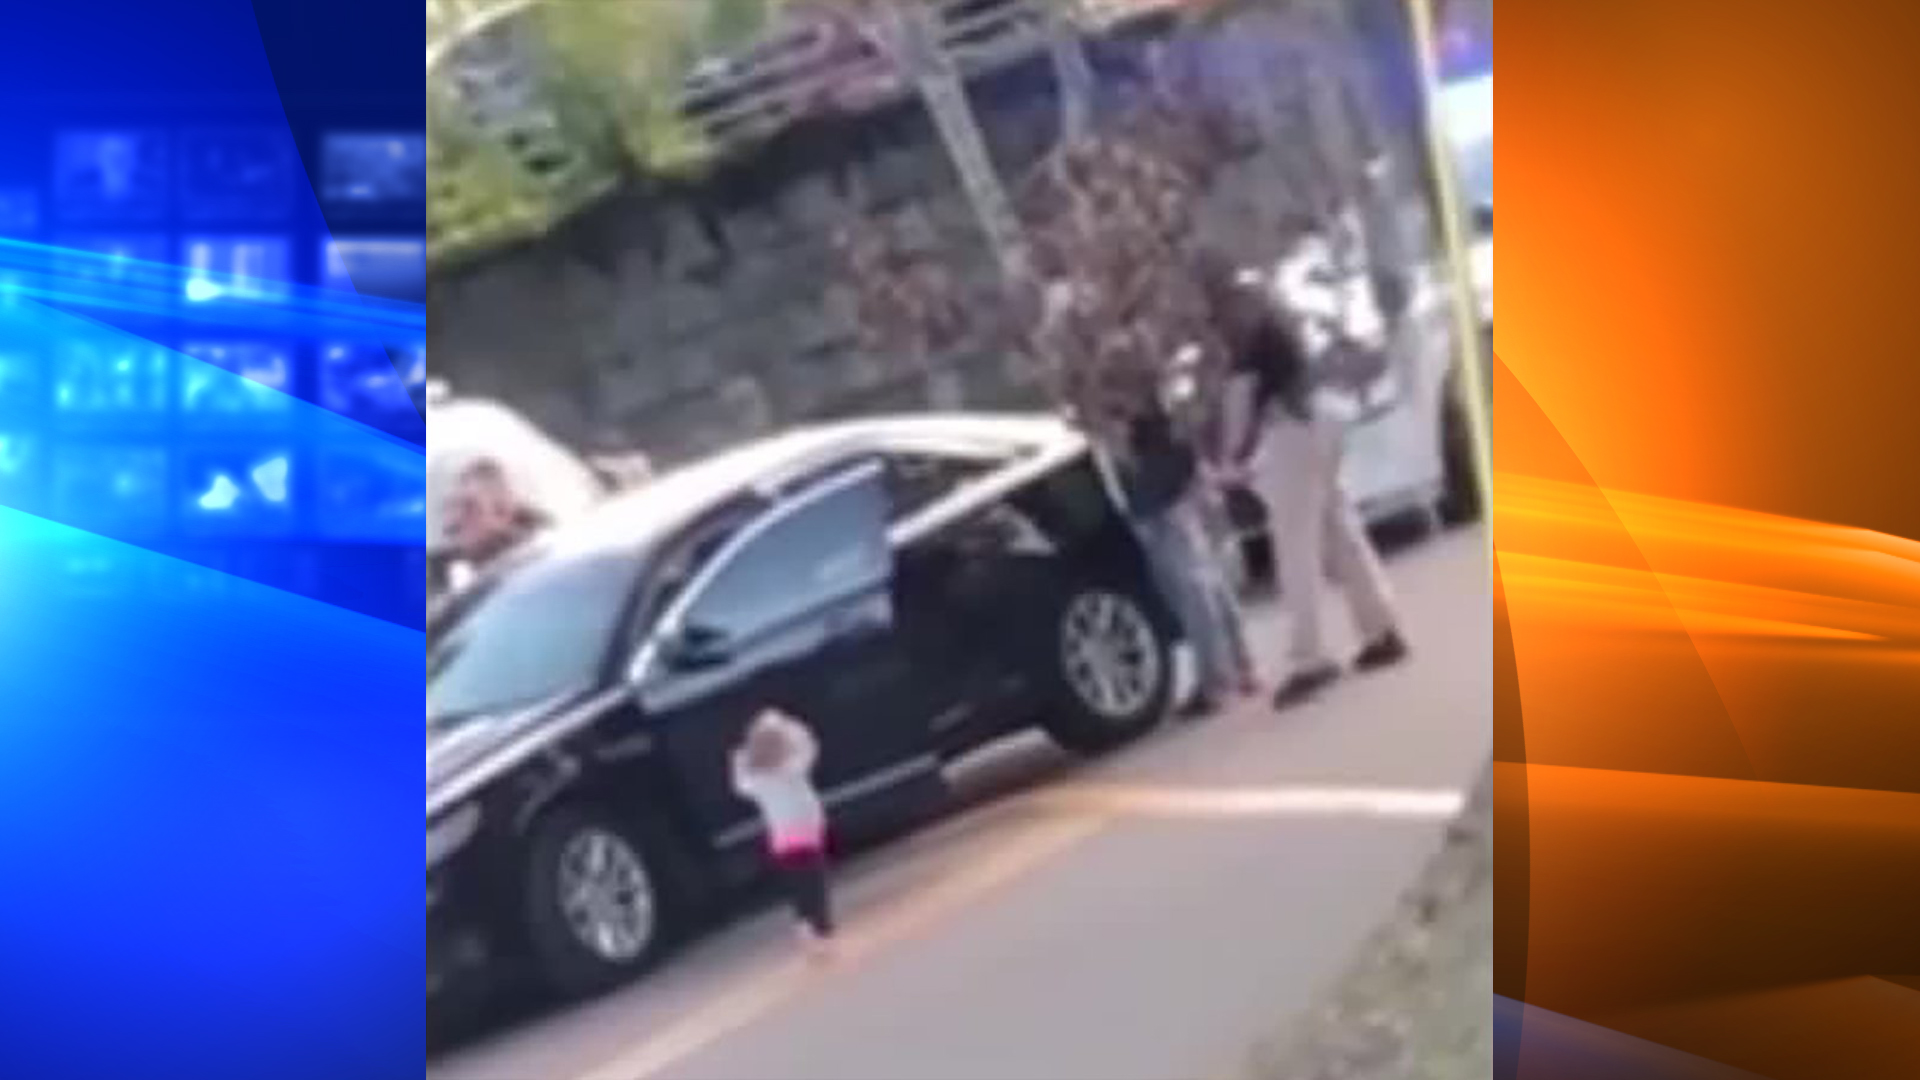 The Tallahassee Police Department shared this photo of a barefoot toddler holding up her hands as her father was pulled over for a traffic stop on Jan. 17, 2019.